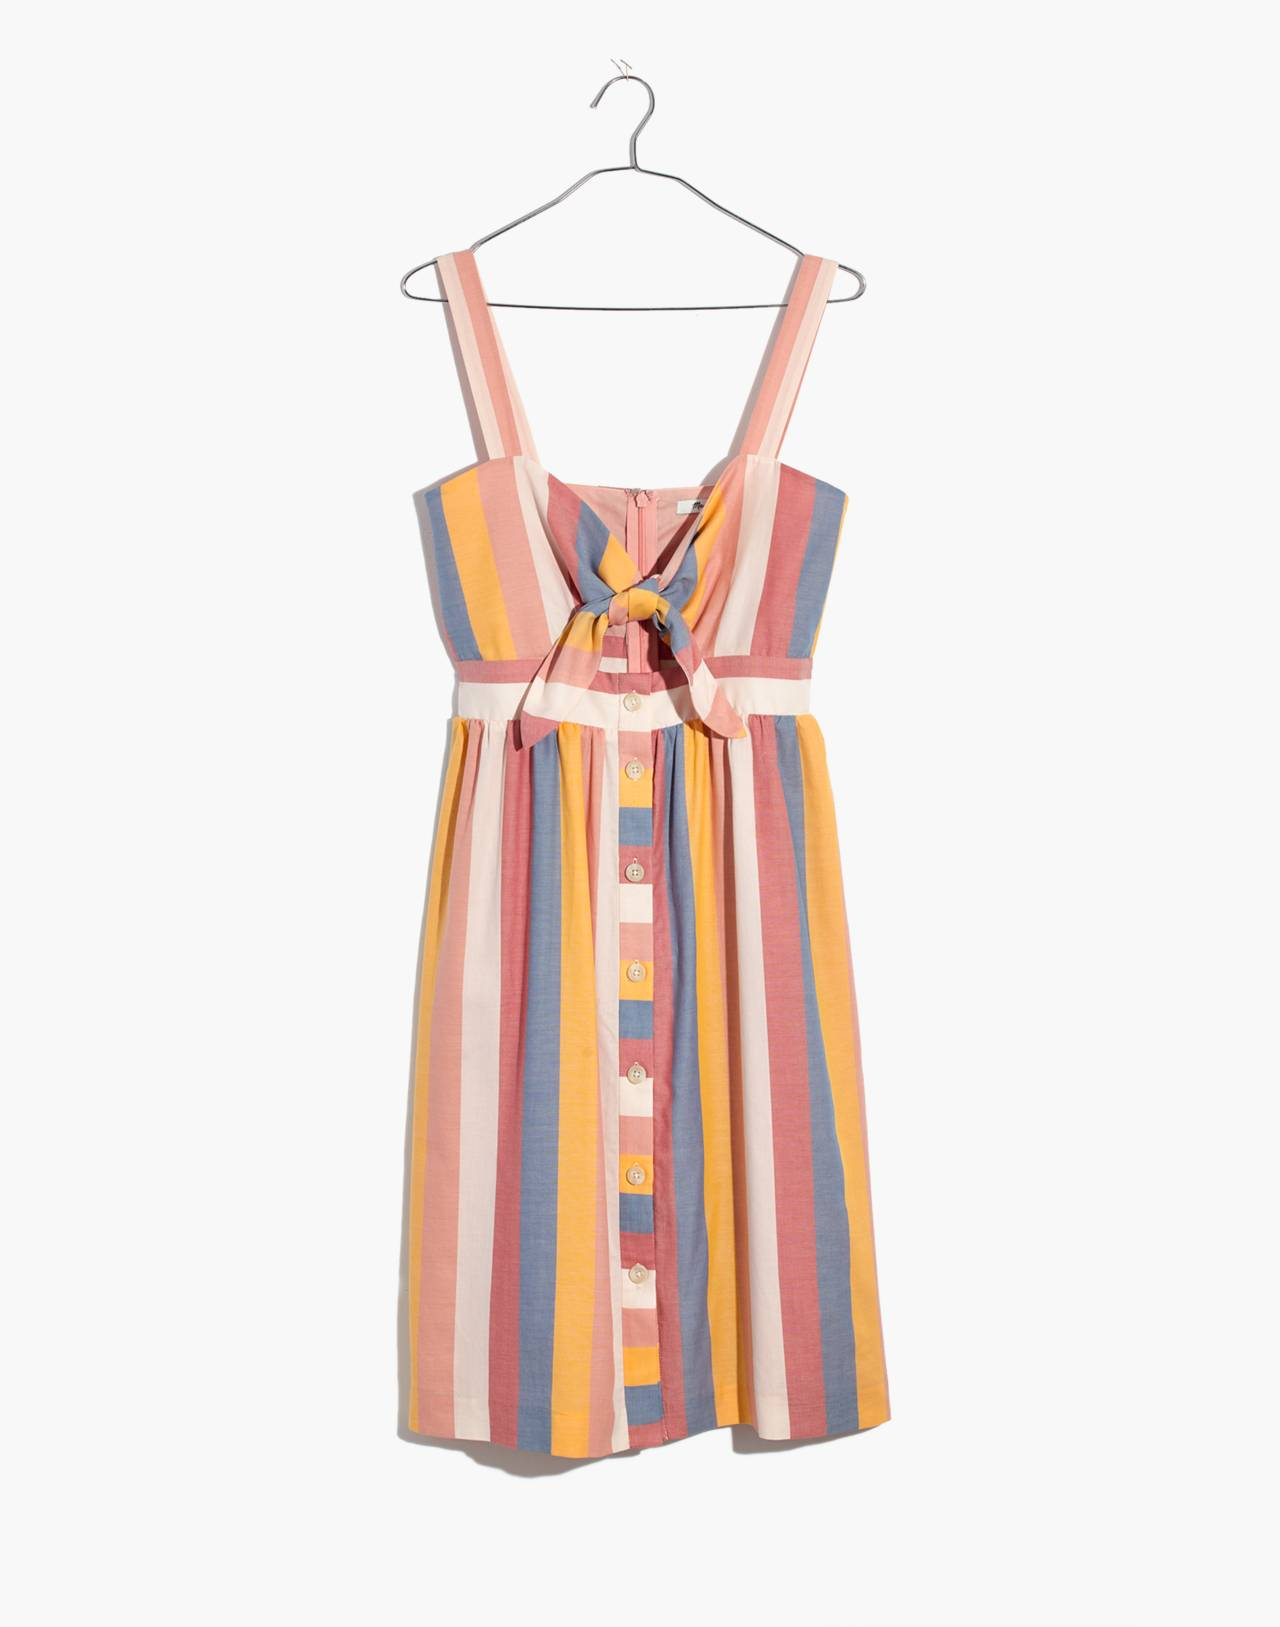 Tie-Front Cutout Dress in Sherbet Stripe in antique coral image 4